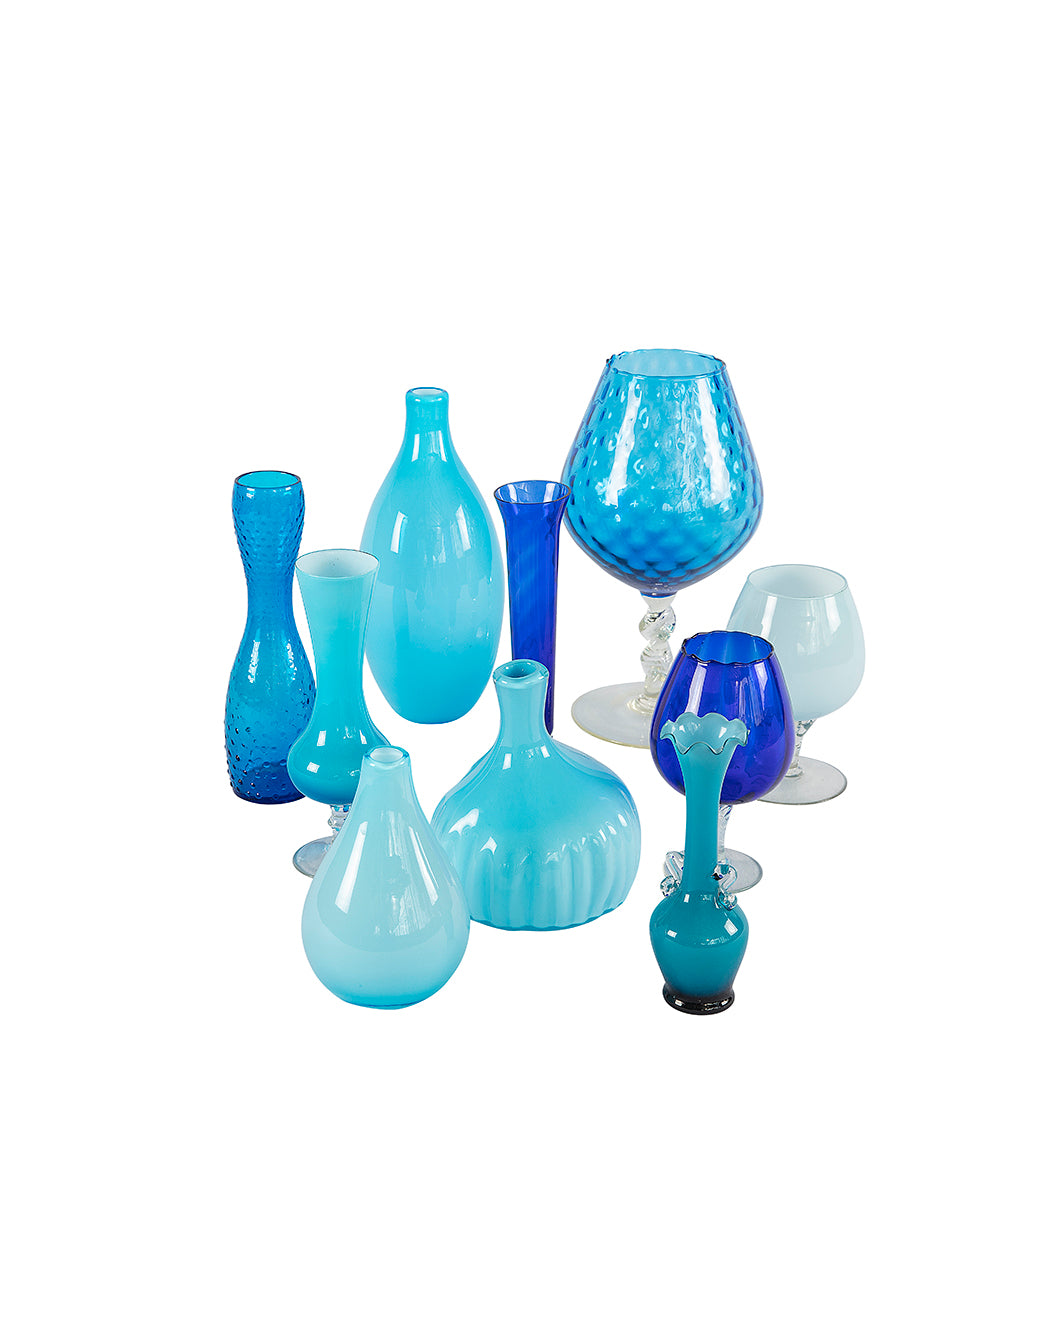 Assortment of ten blue crystal vases